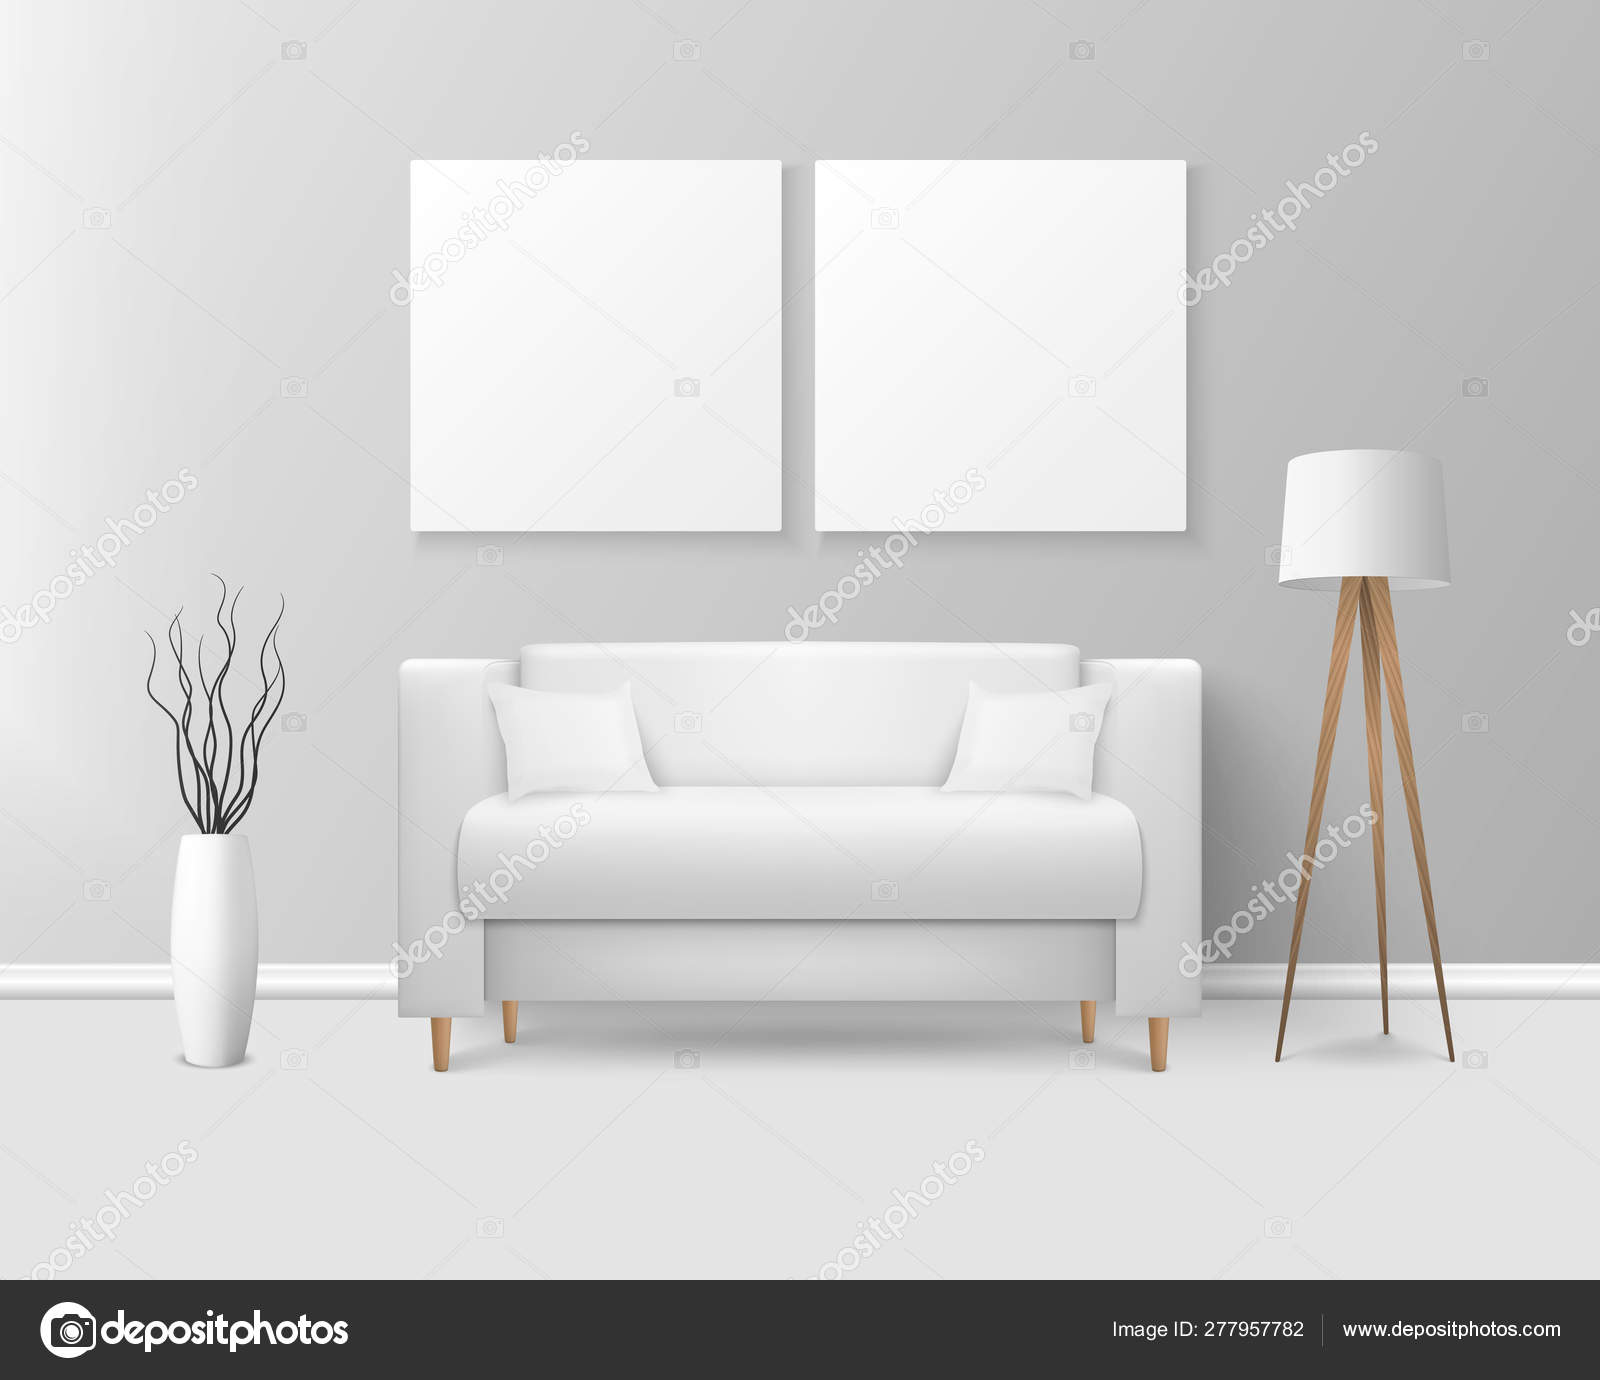 Vector 3d Realistic Render White Sofa Couch With Pillows In Simple Style In Modern Room Apartment Salon Art Gallery Living Room Reception Lounge Or Office Interior White Posters On The Wall